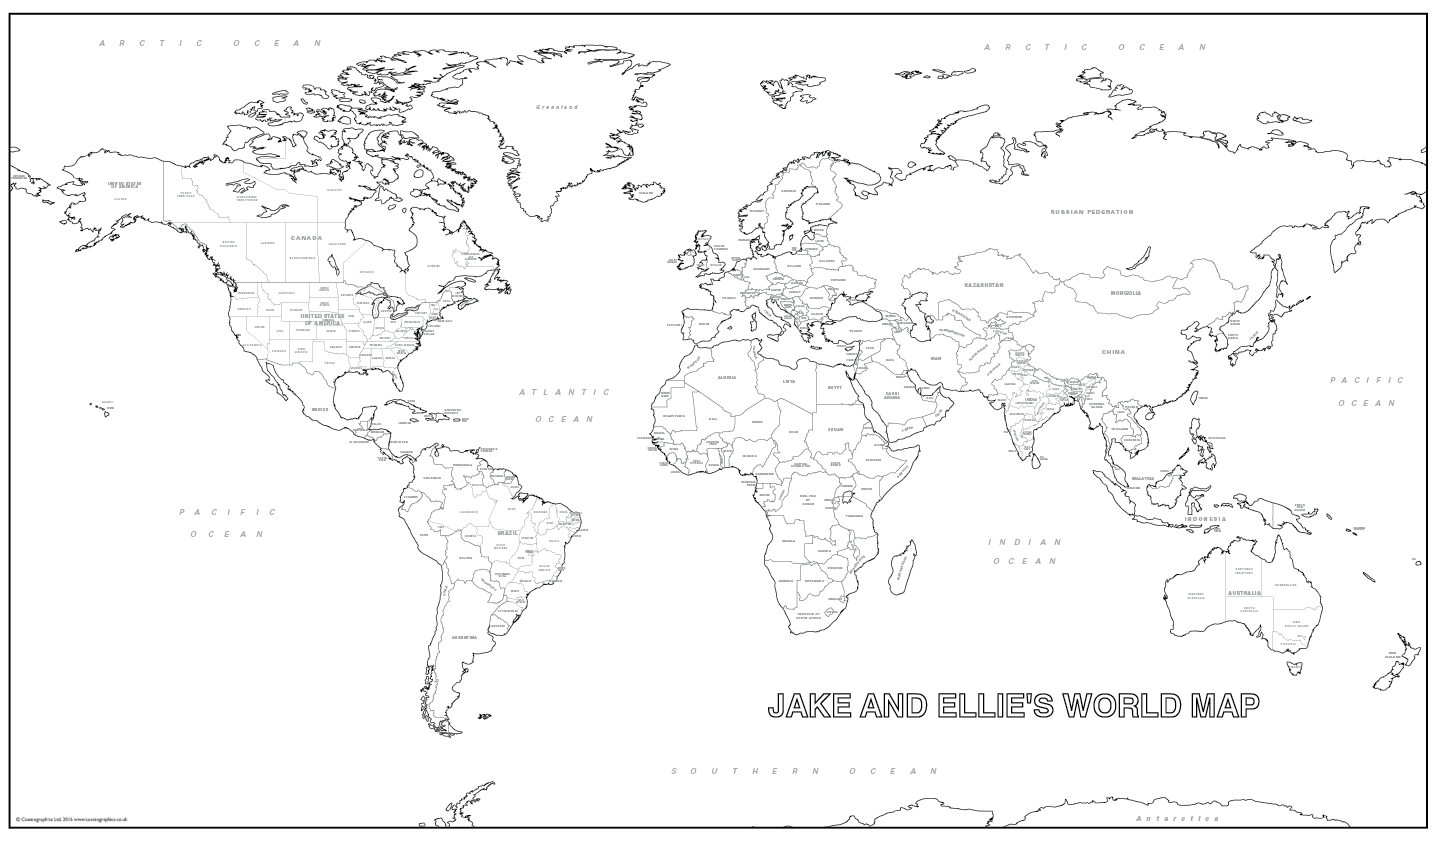 coloring map world world map coloring pages coloring pages to download and map coloring world